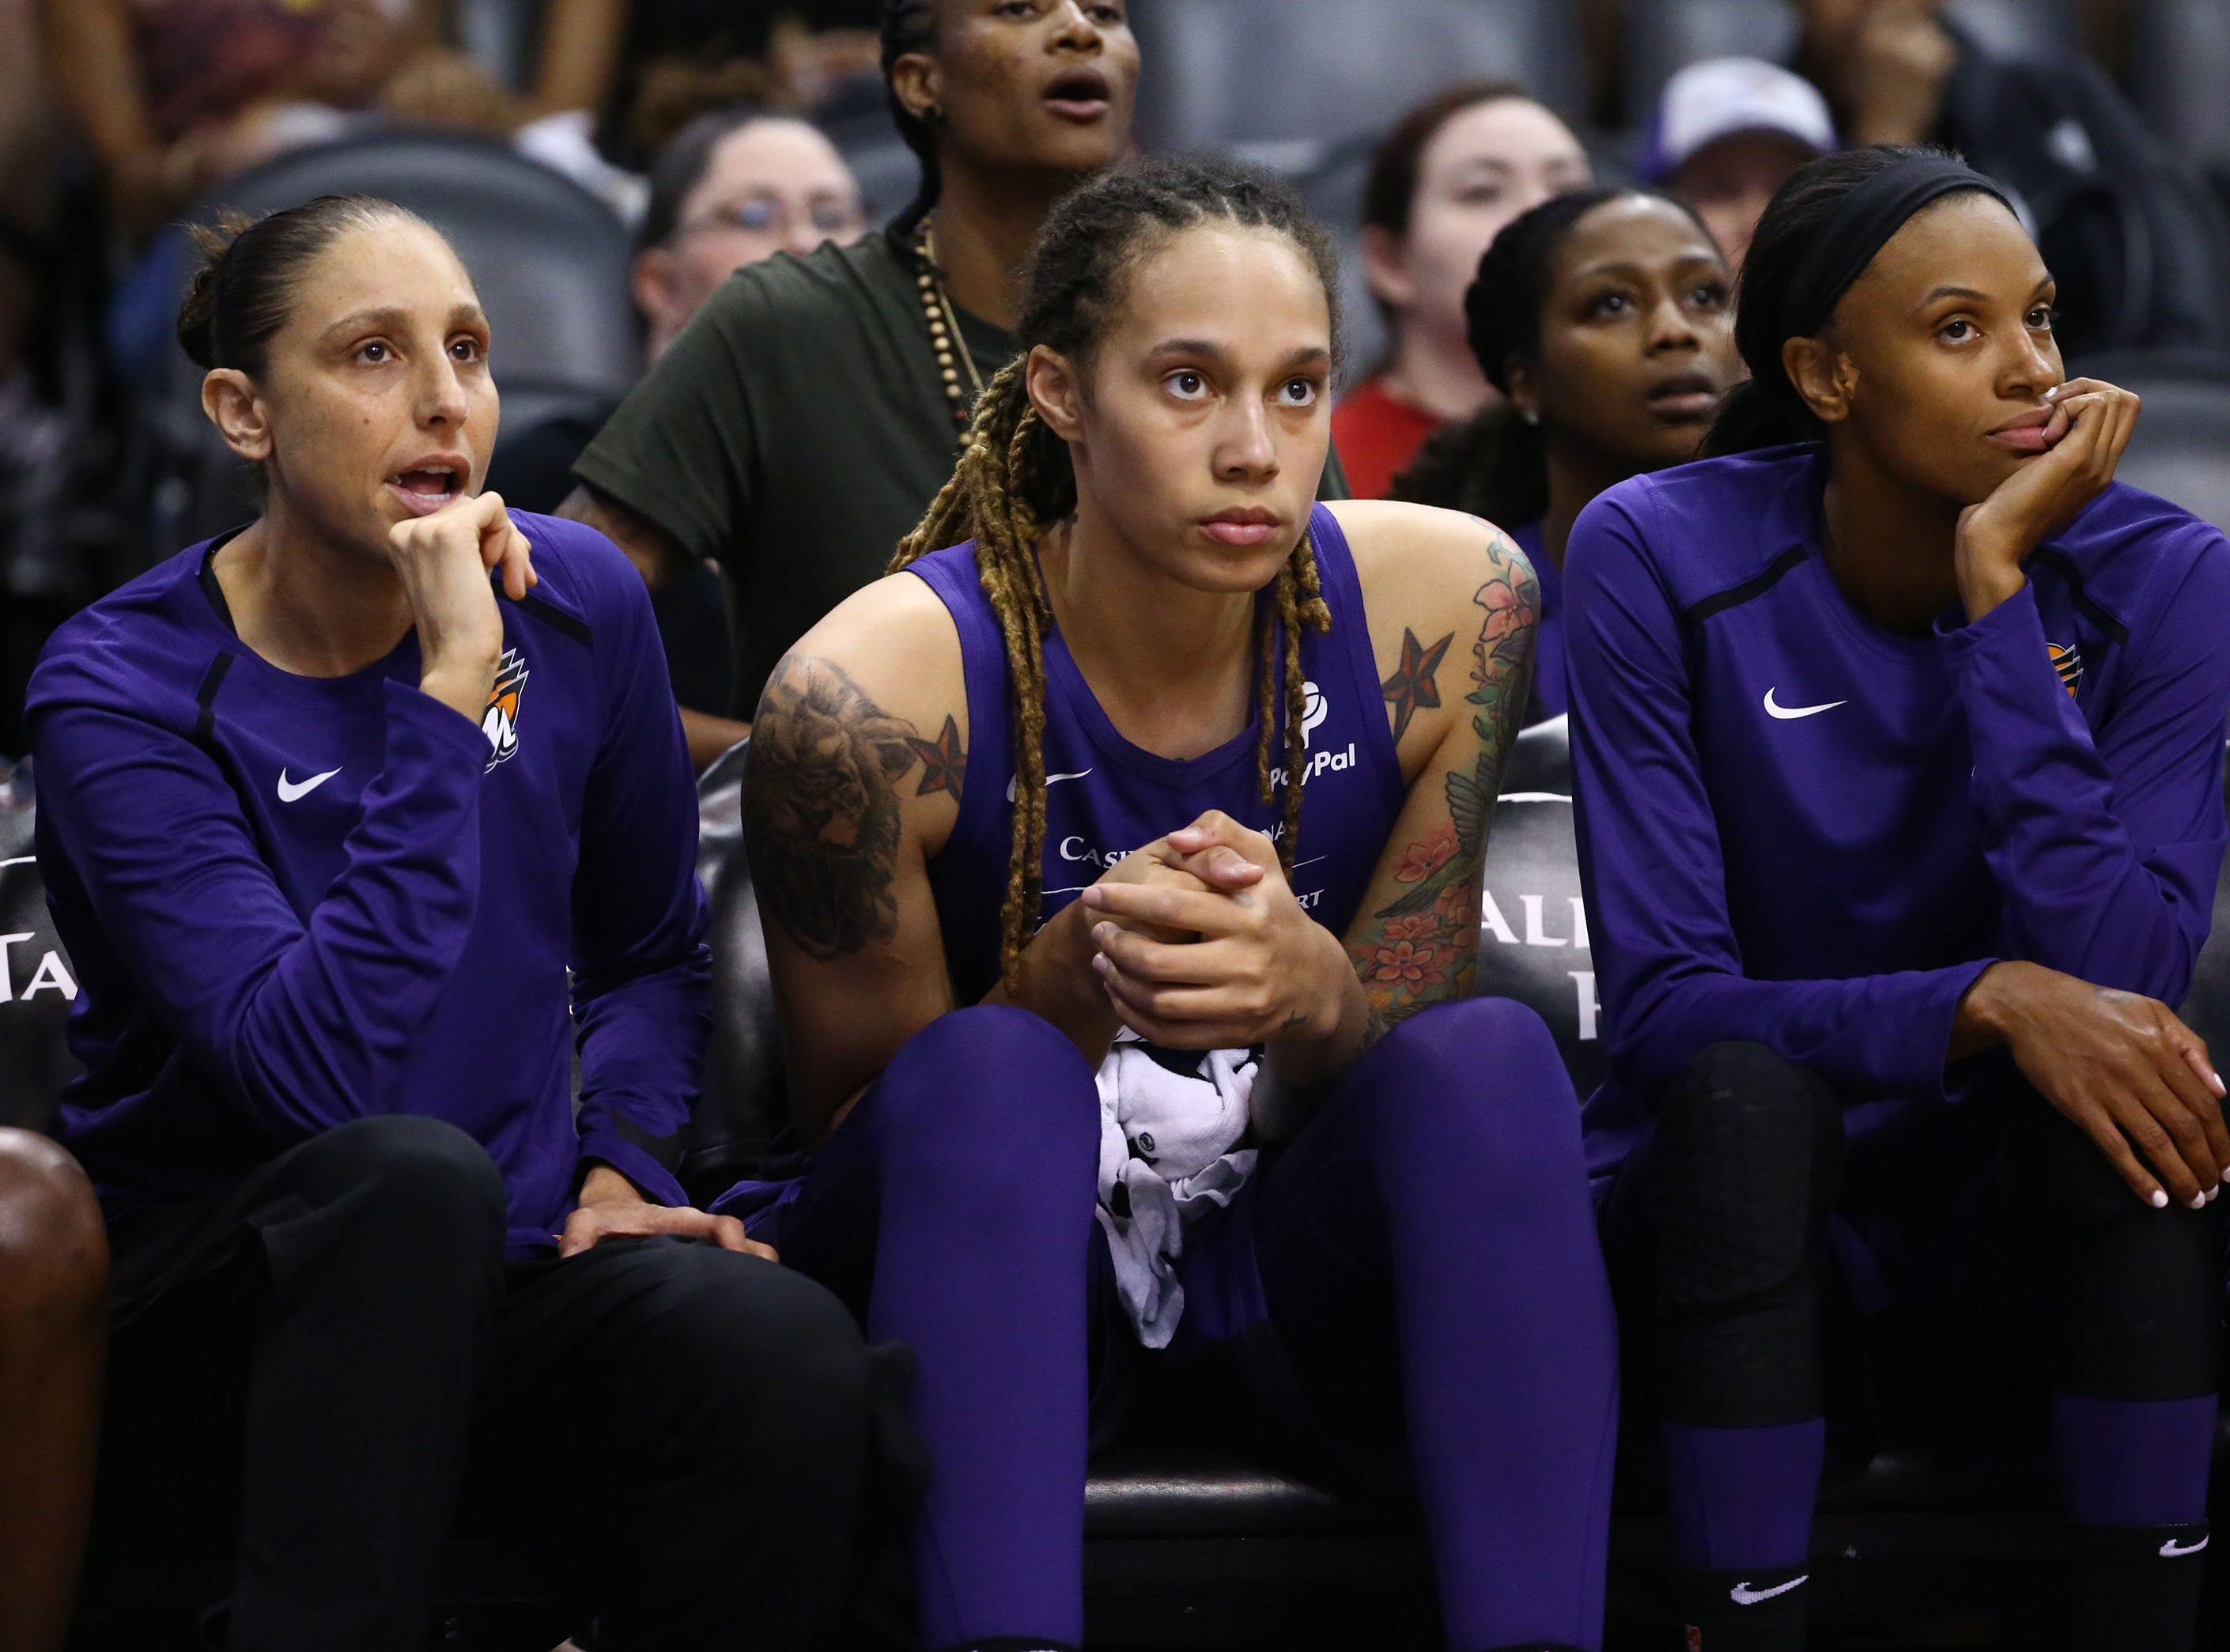 Phoenix Mercury guard Diana Taurasi watches the action from the bench with a back injury against the Los Angeles Sparks in the first half during a preseason game on May 11, 2019 in Phoenix, Ariz.